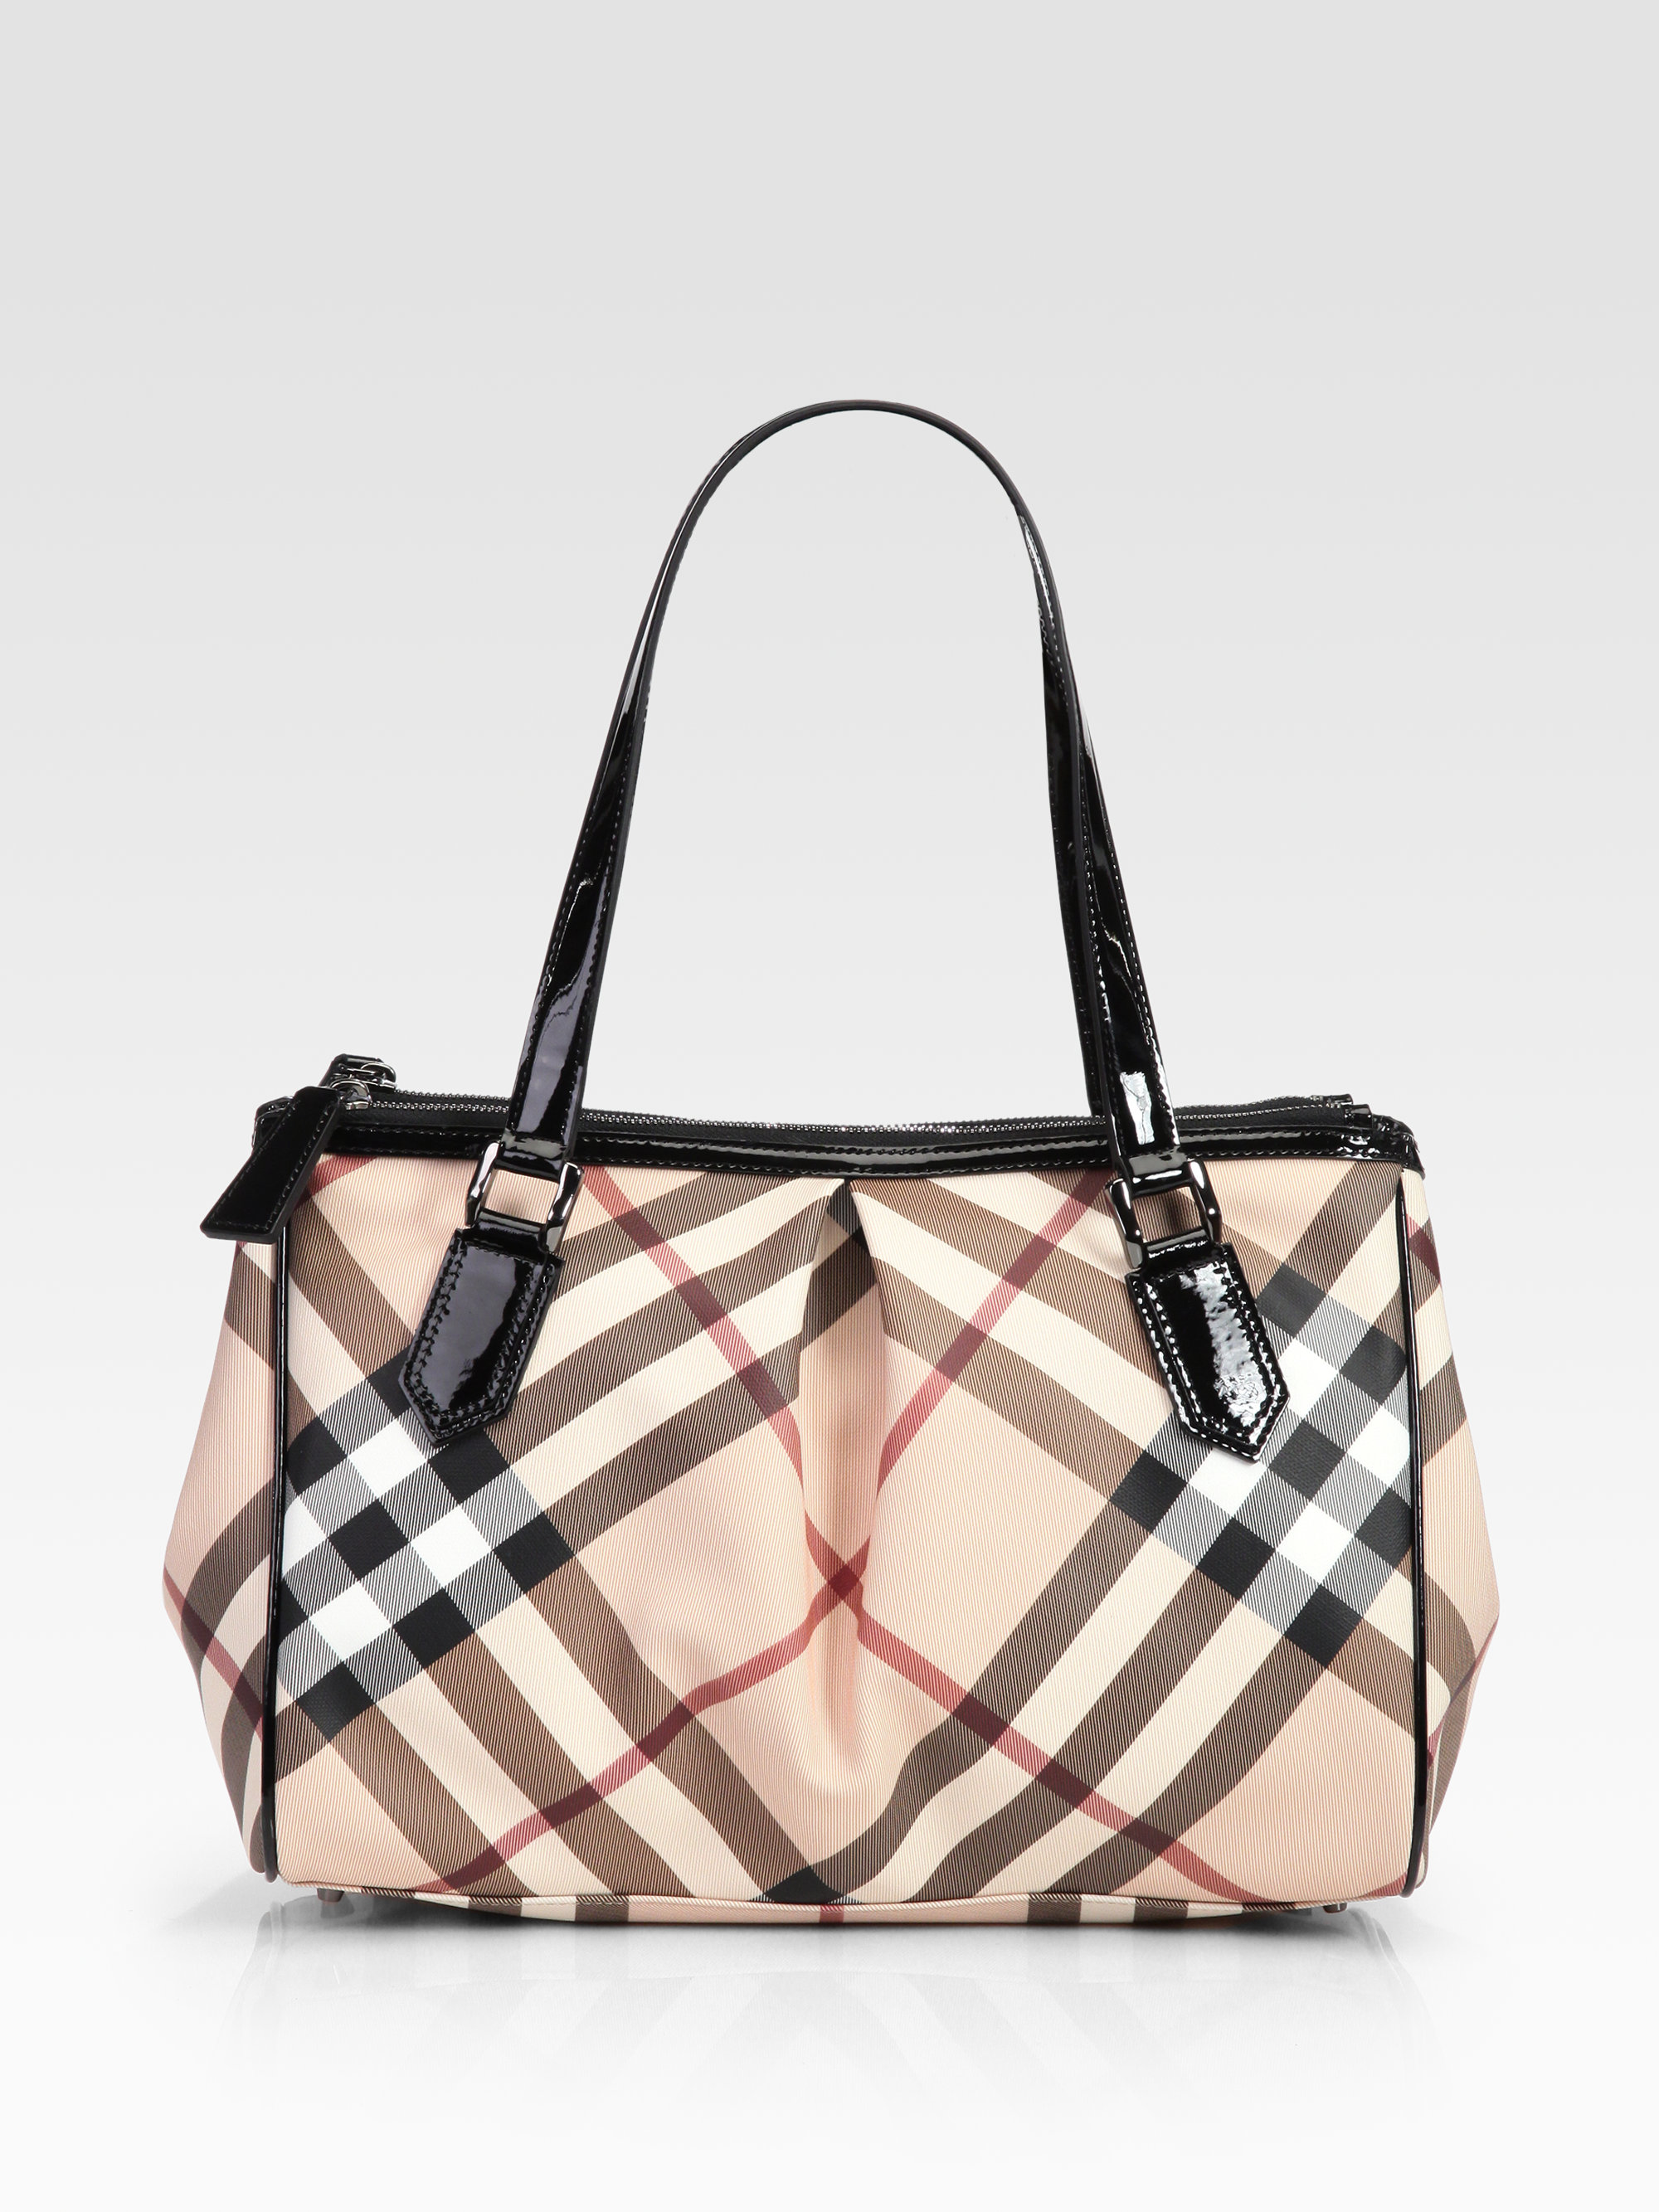 1b45846ae99 Burberry Check Canvas Shoulder Bag in Natural - Lyst